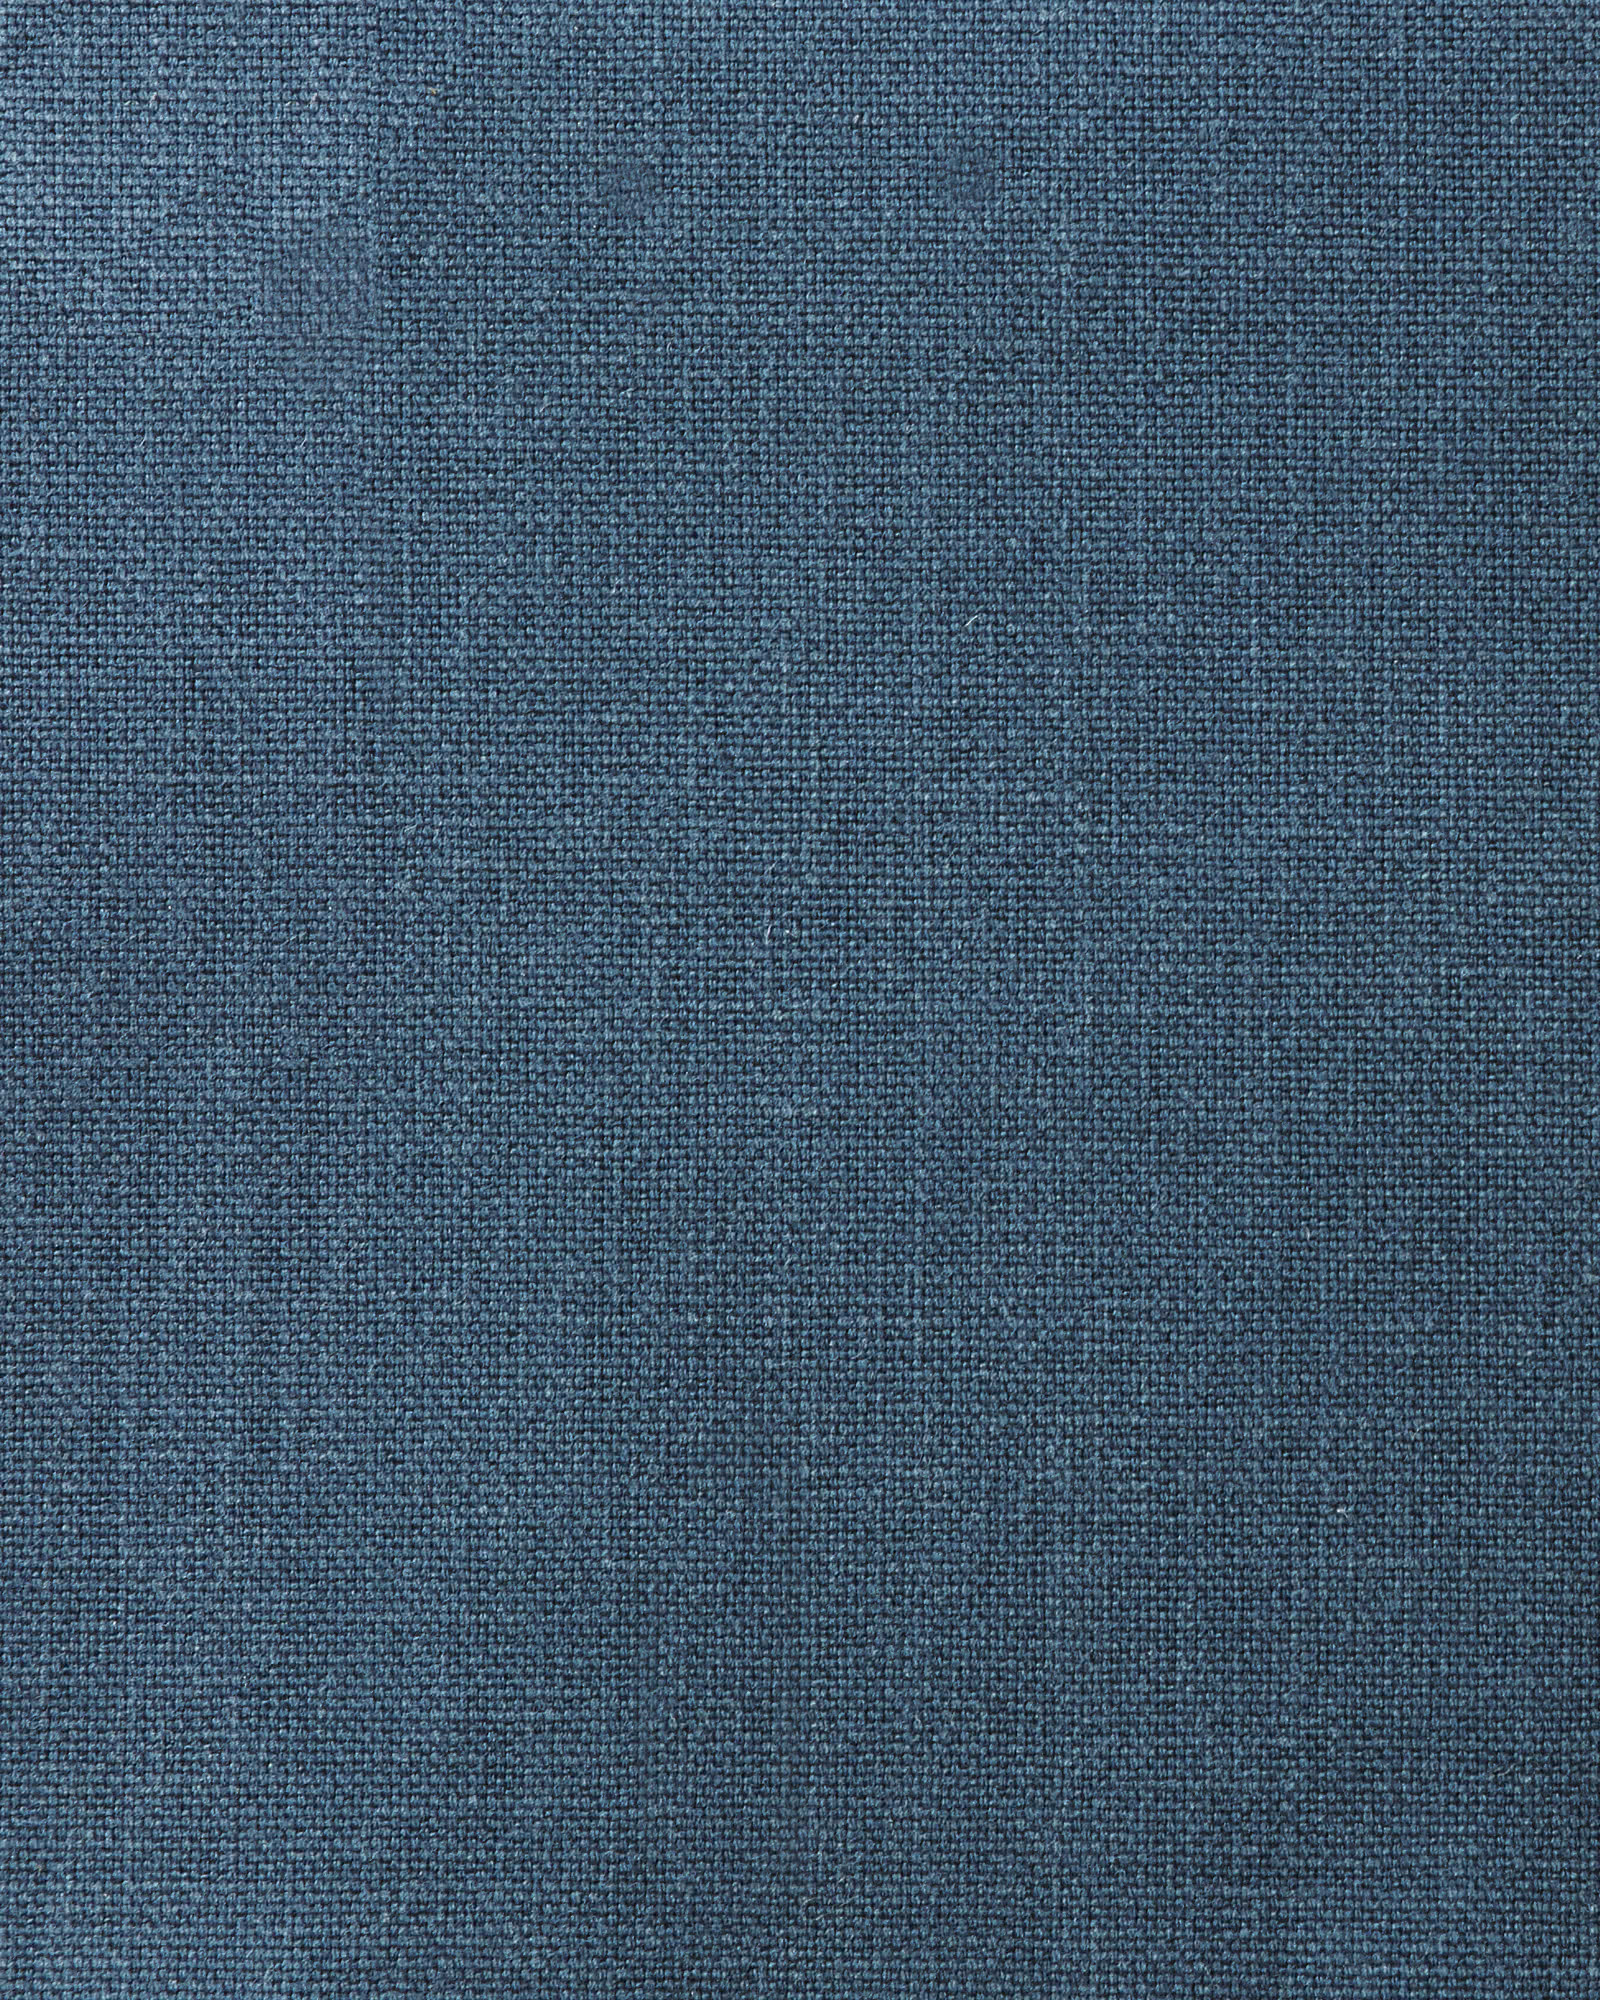 Brushed Cotton Canvas - Aegean